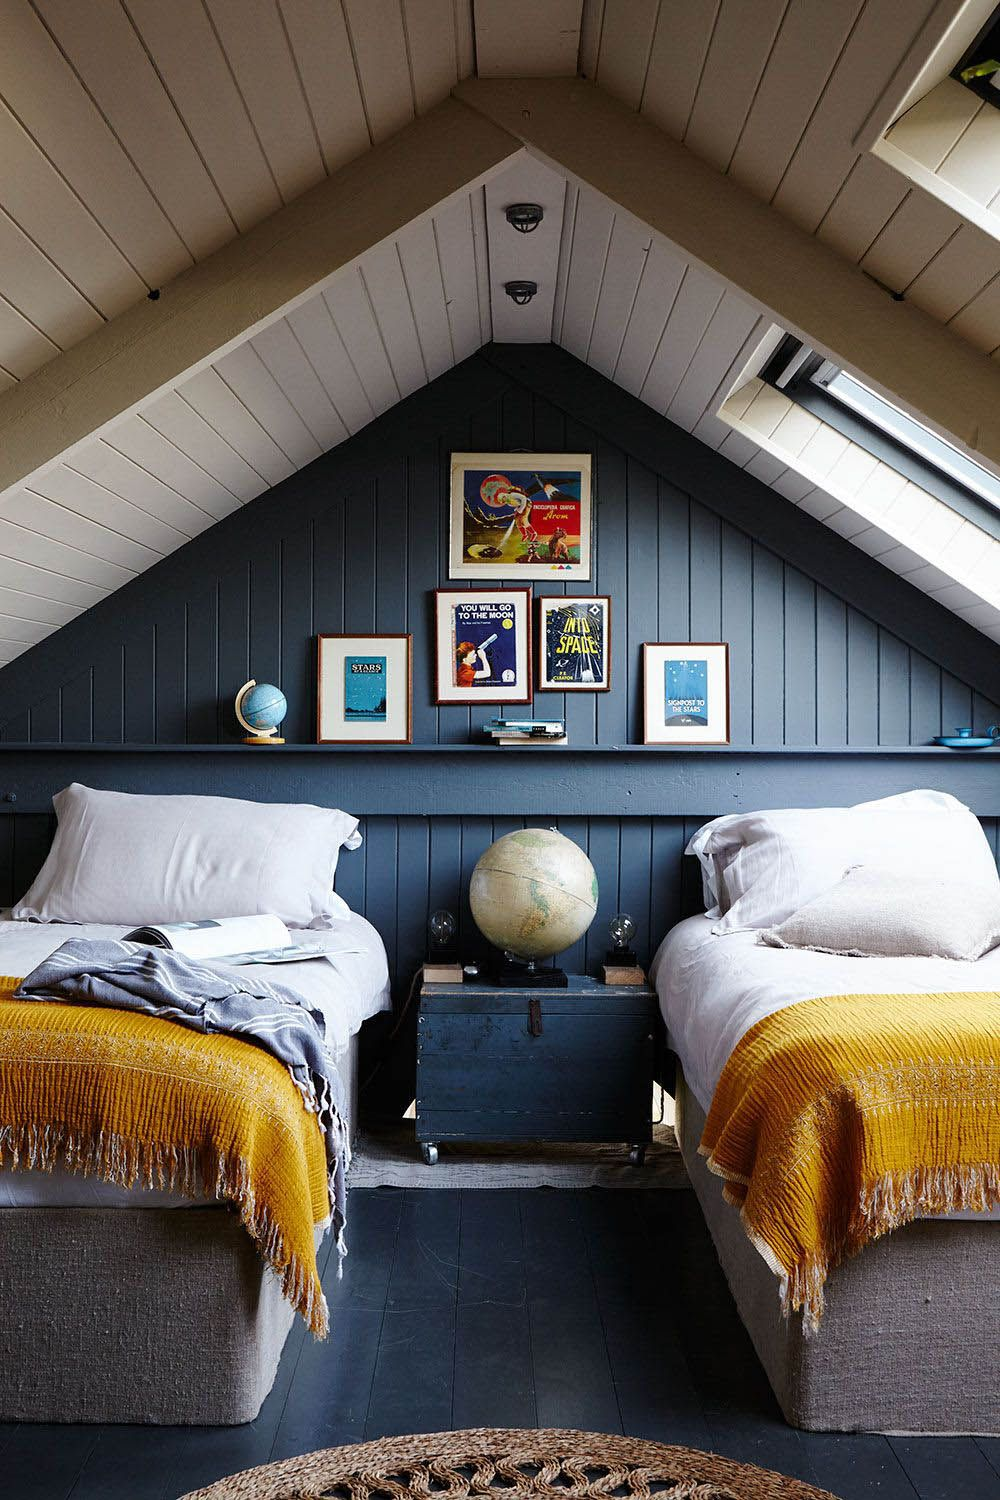 Outstanding Childrens Bedroom Ideas Diy That Will Blow Your Mind Rustic Bedroom Interior Design Bedroom Attic Bedroom Designs